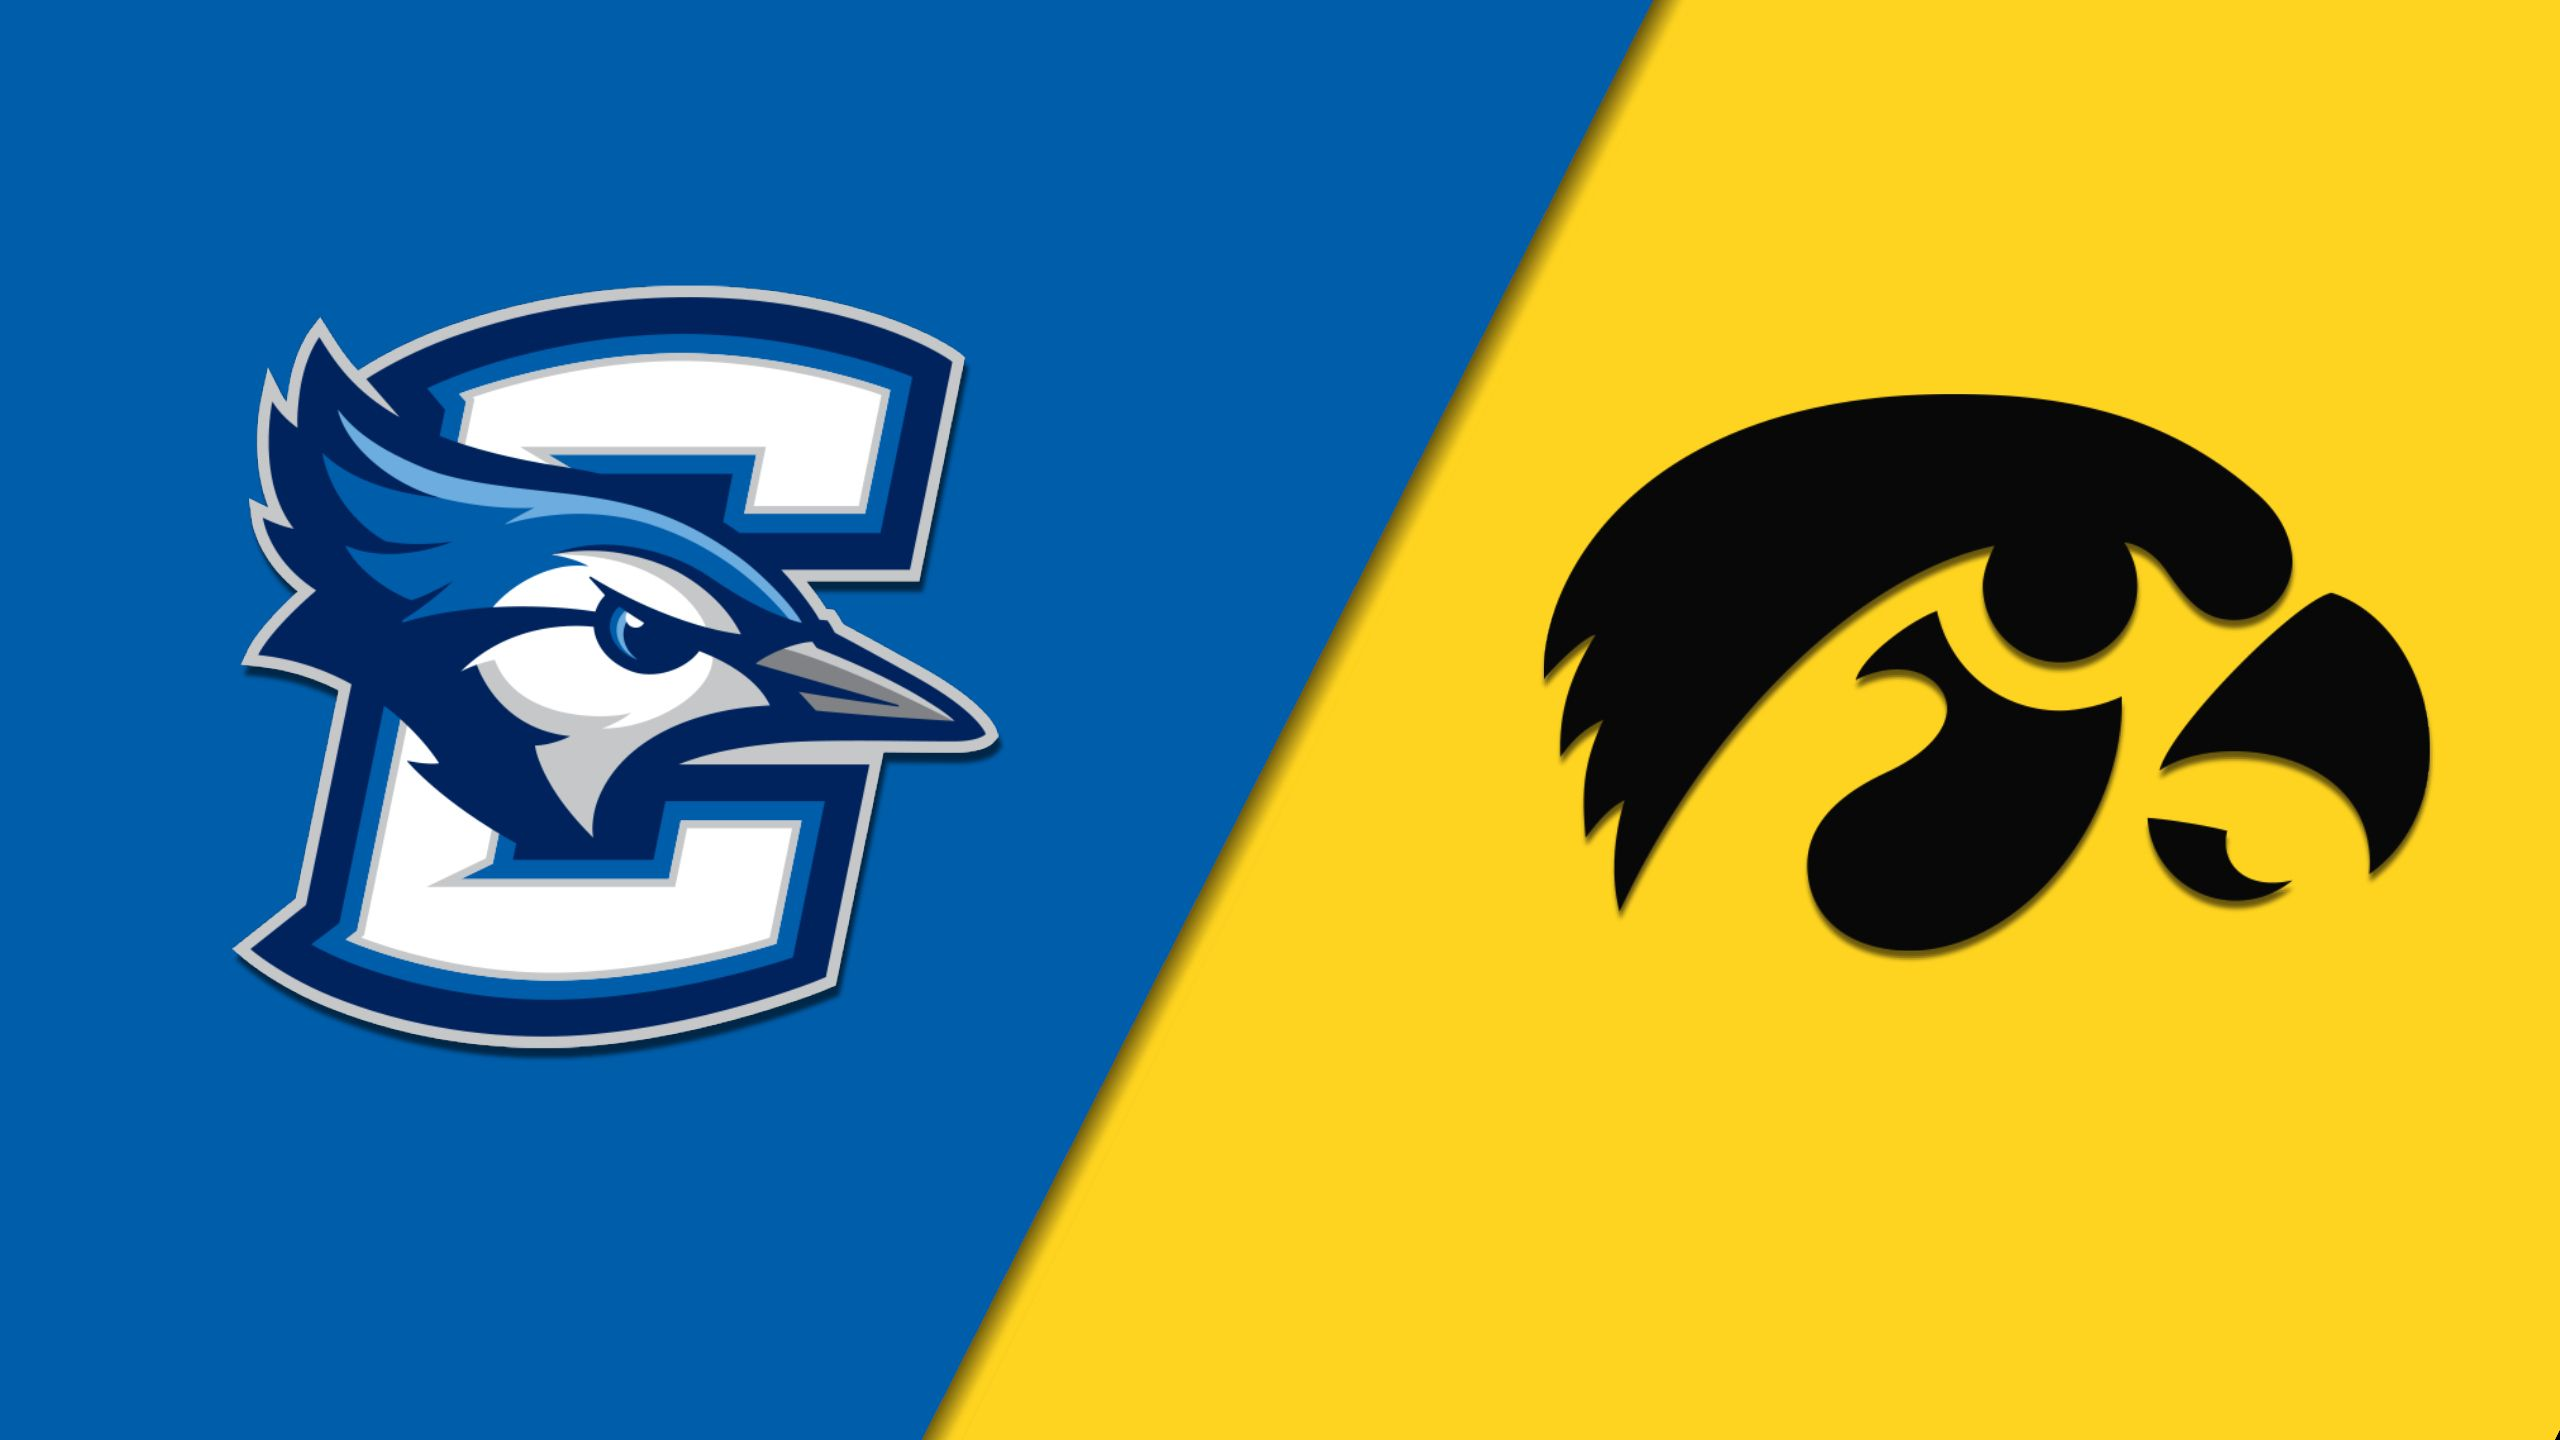 #11 Creighton vs. #6 Iowa (First Round) (NCAA Women's Basketball Championship)